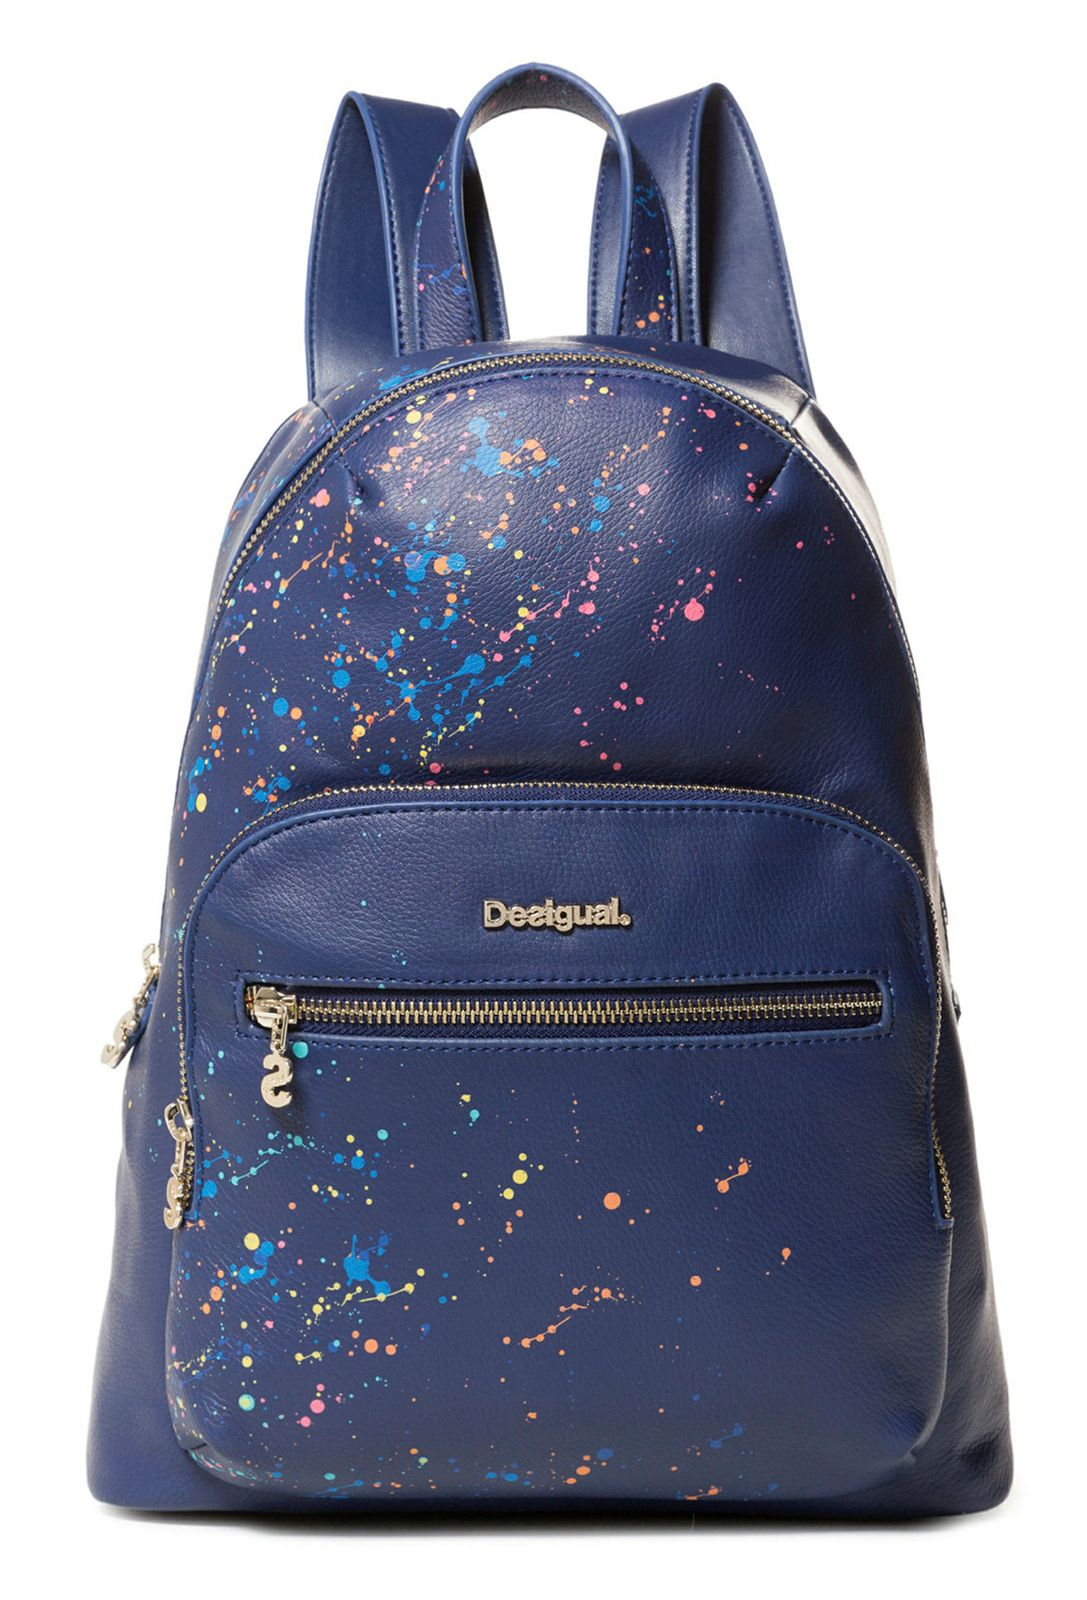 quality shades of good out x Desigual Siracusa Lima Backpack Marino